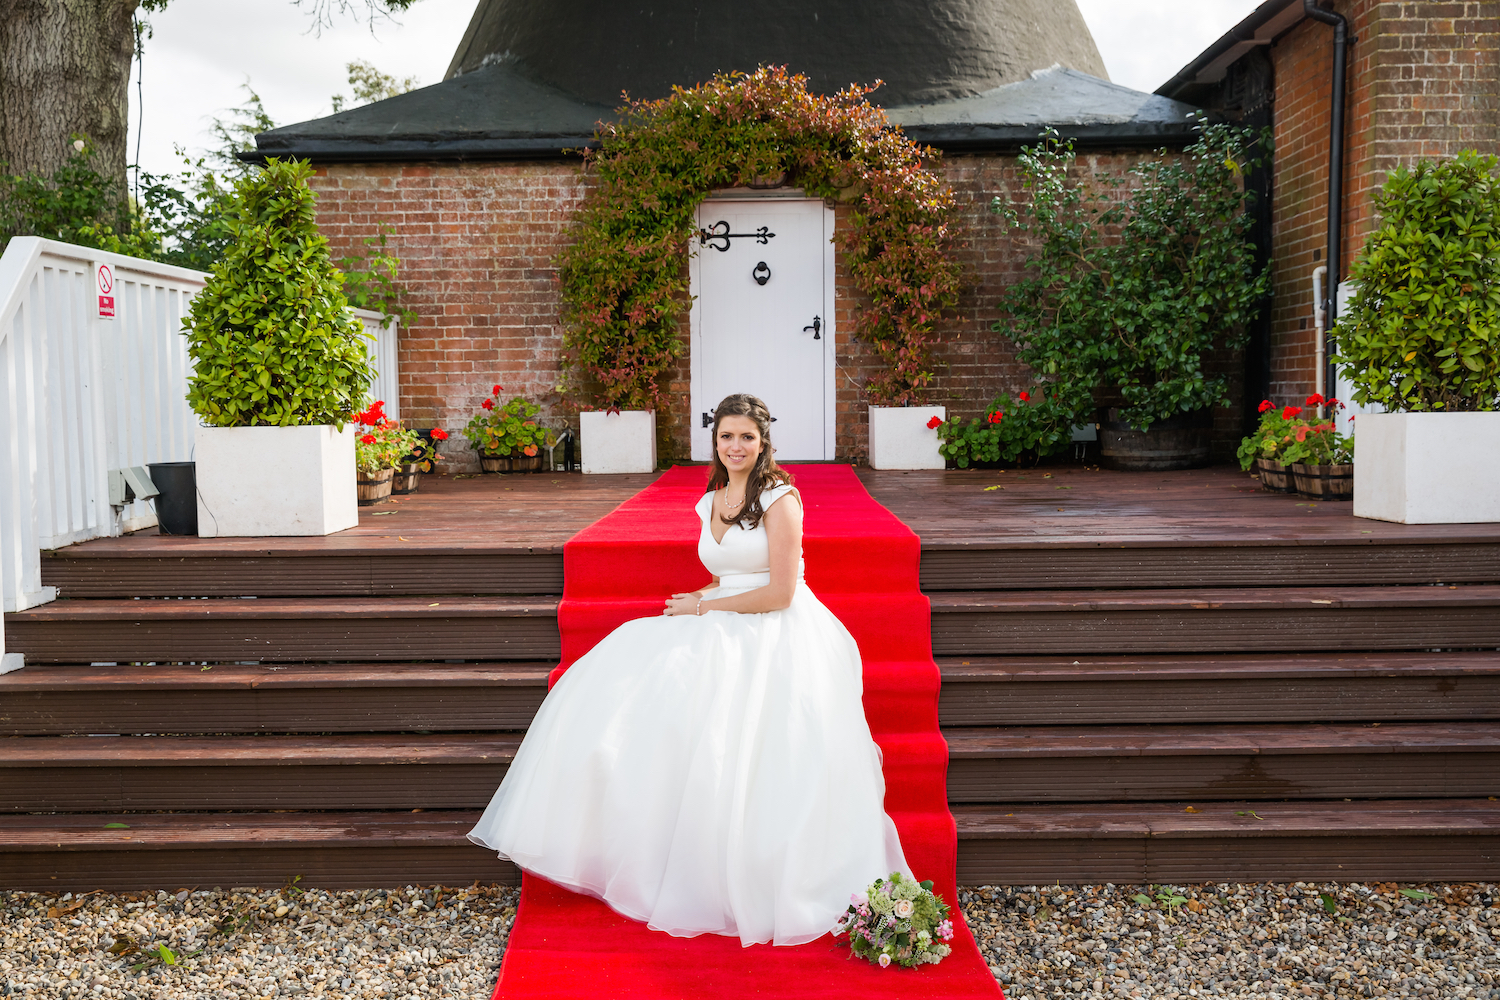 Bride on Red Carpet outside the Kiln Room